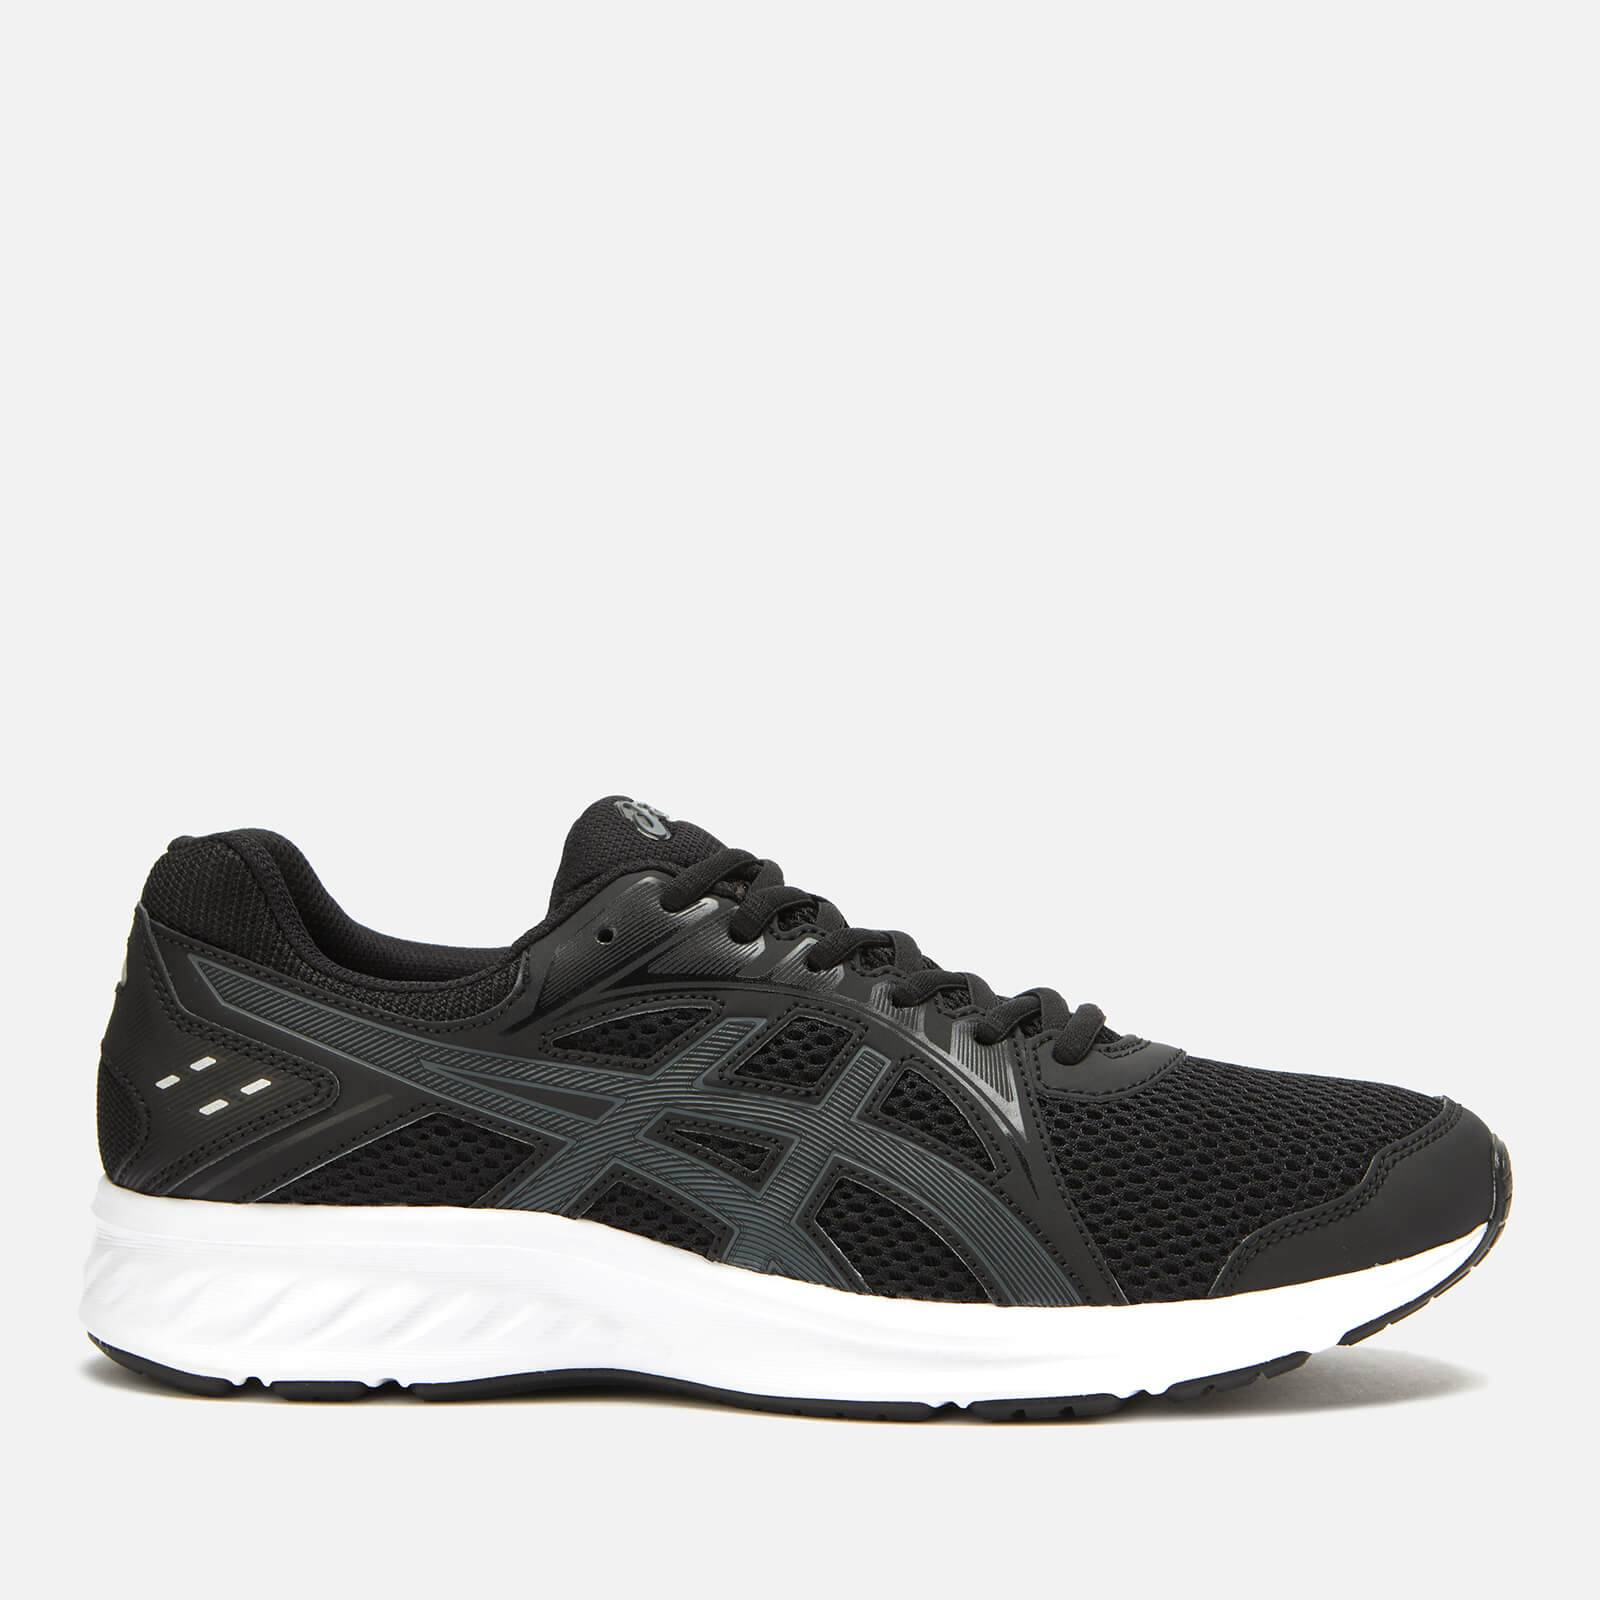 Asics Men's Running Jolt 2 Trainers - Black/Steel Grey - UK 7 - Black